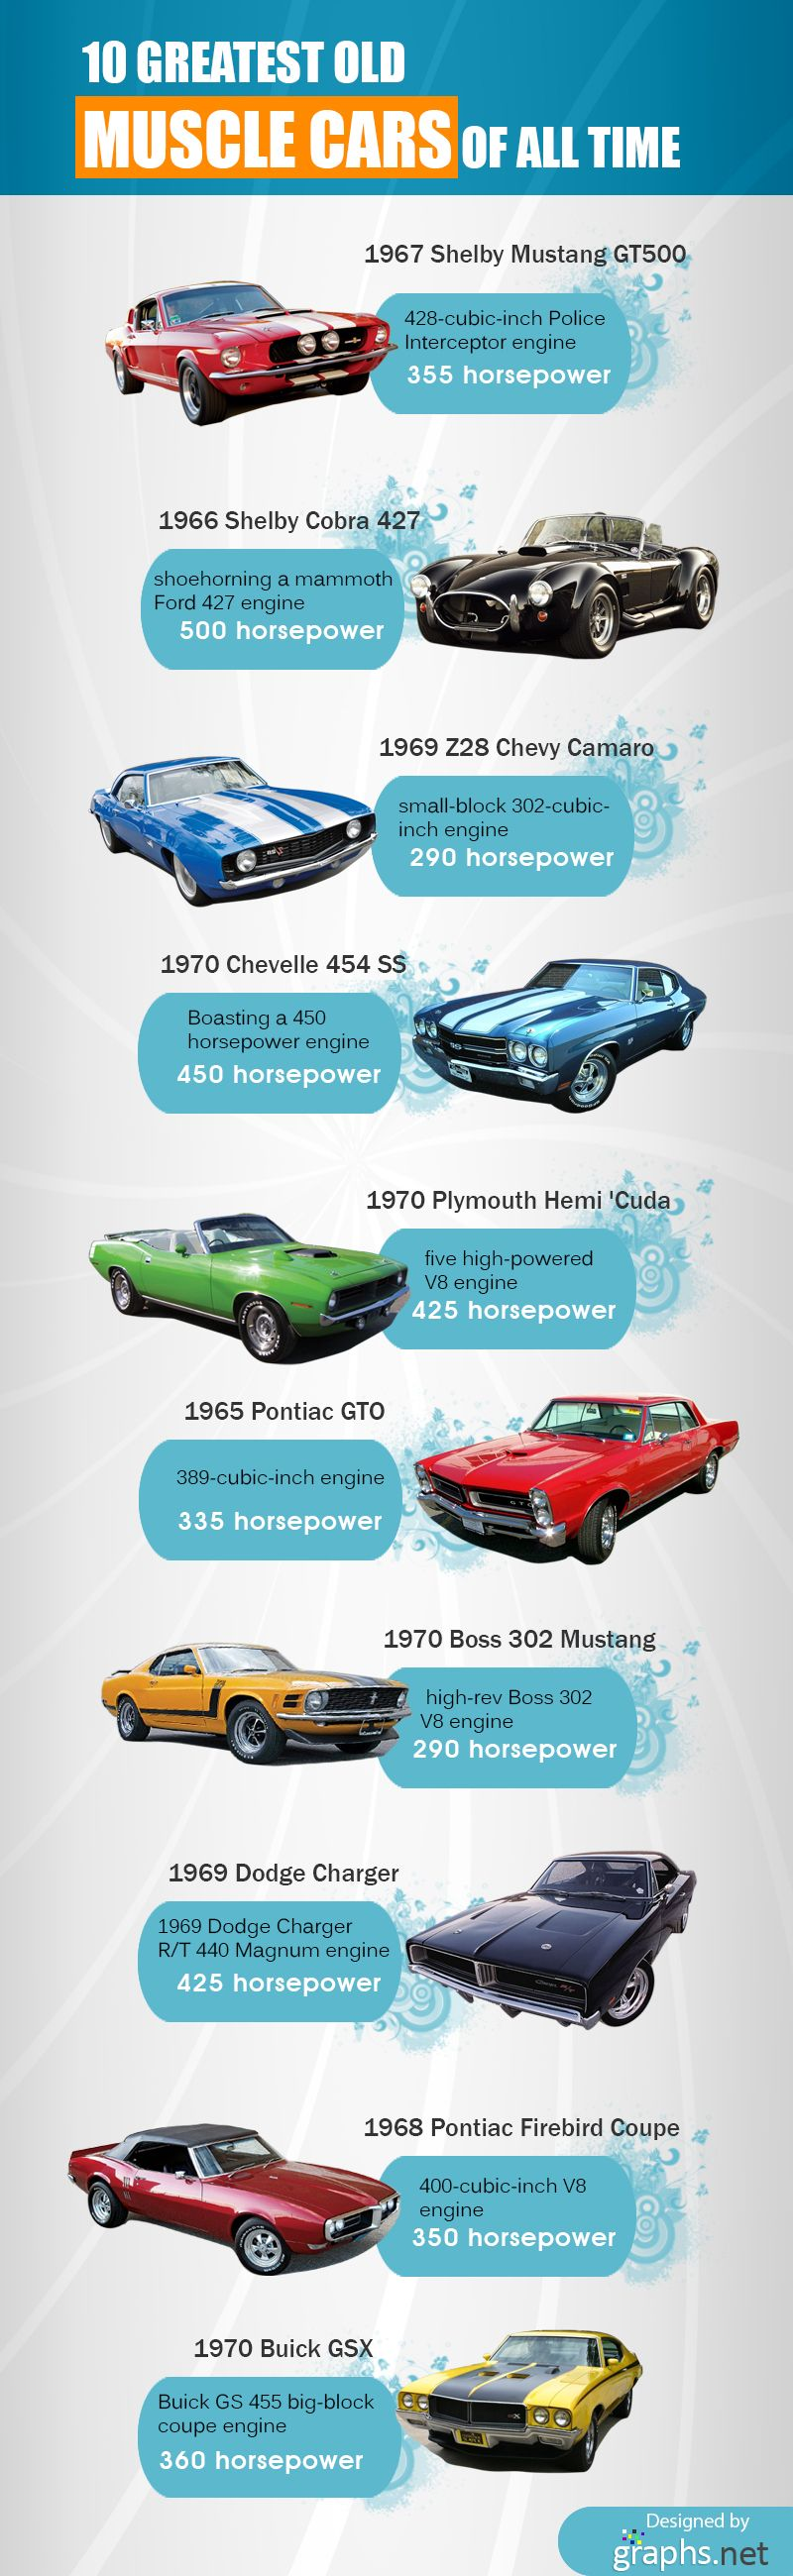 1965 chevy ii nova ss favorite cars american muscle pinterest - Have Some Muscle Cars For Your Monday 28 Hq Photos Muscles Cars And General Lee